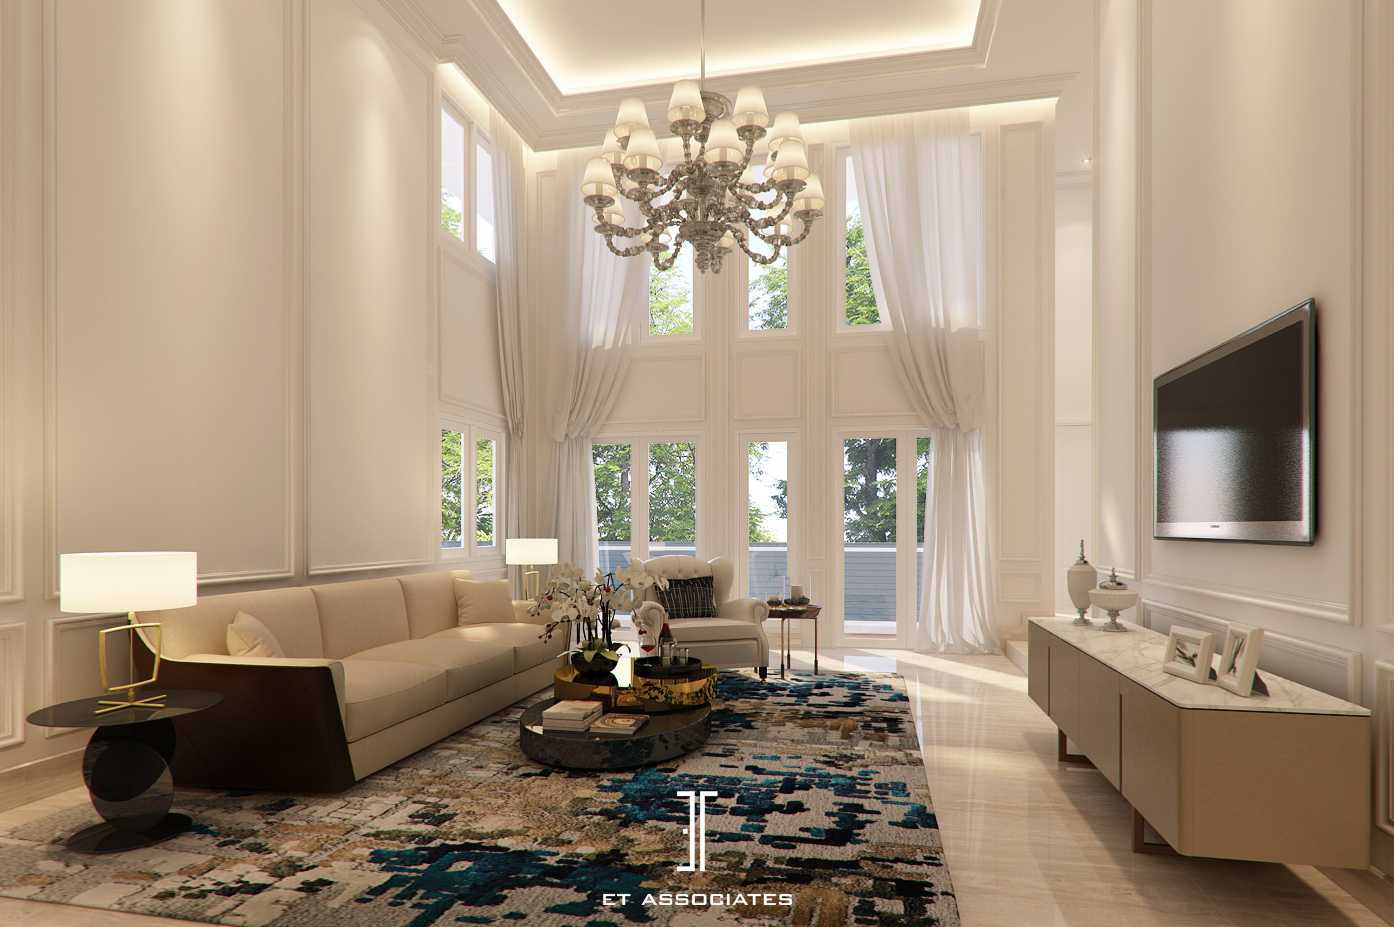 Private Residential at Gandaria Karya Et Associates (Sumber: arsitag.com)